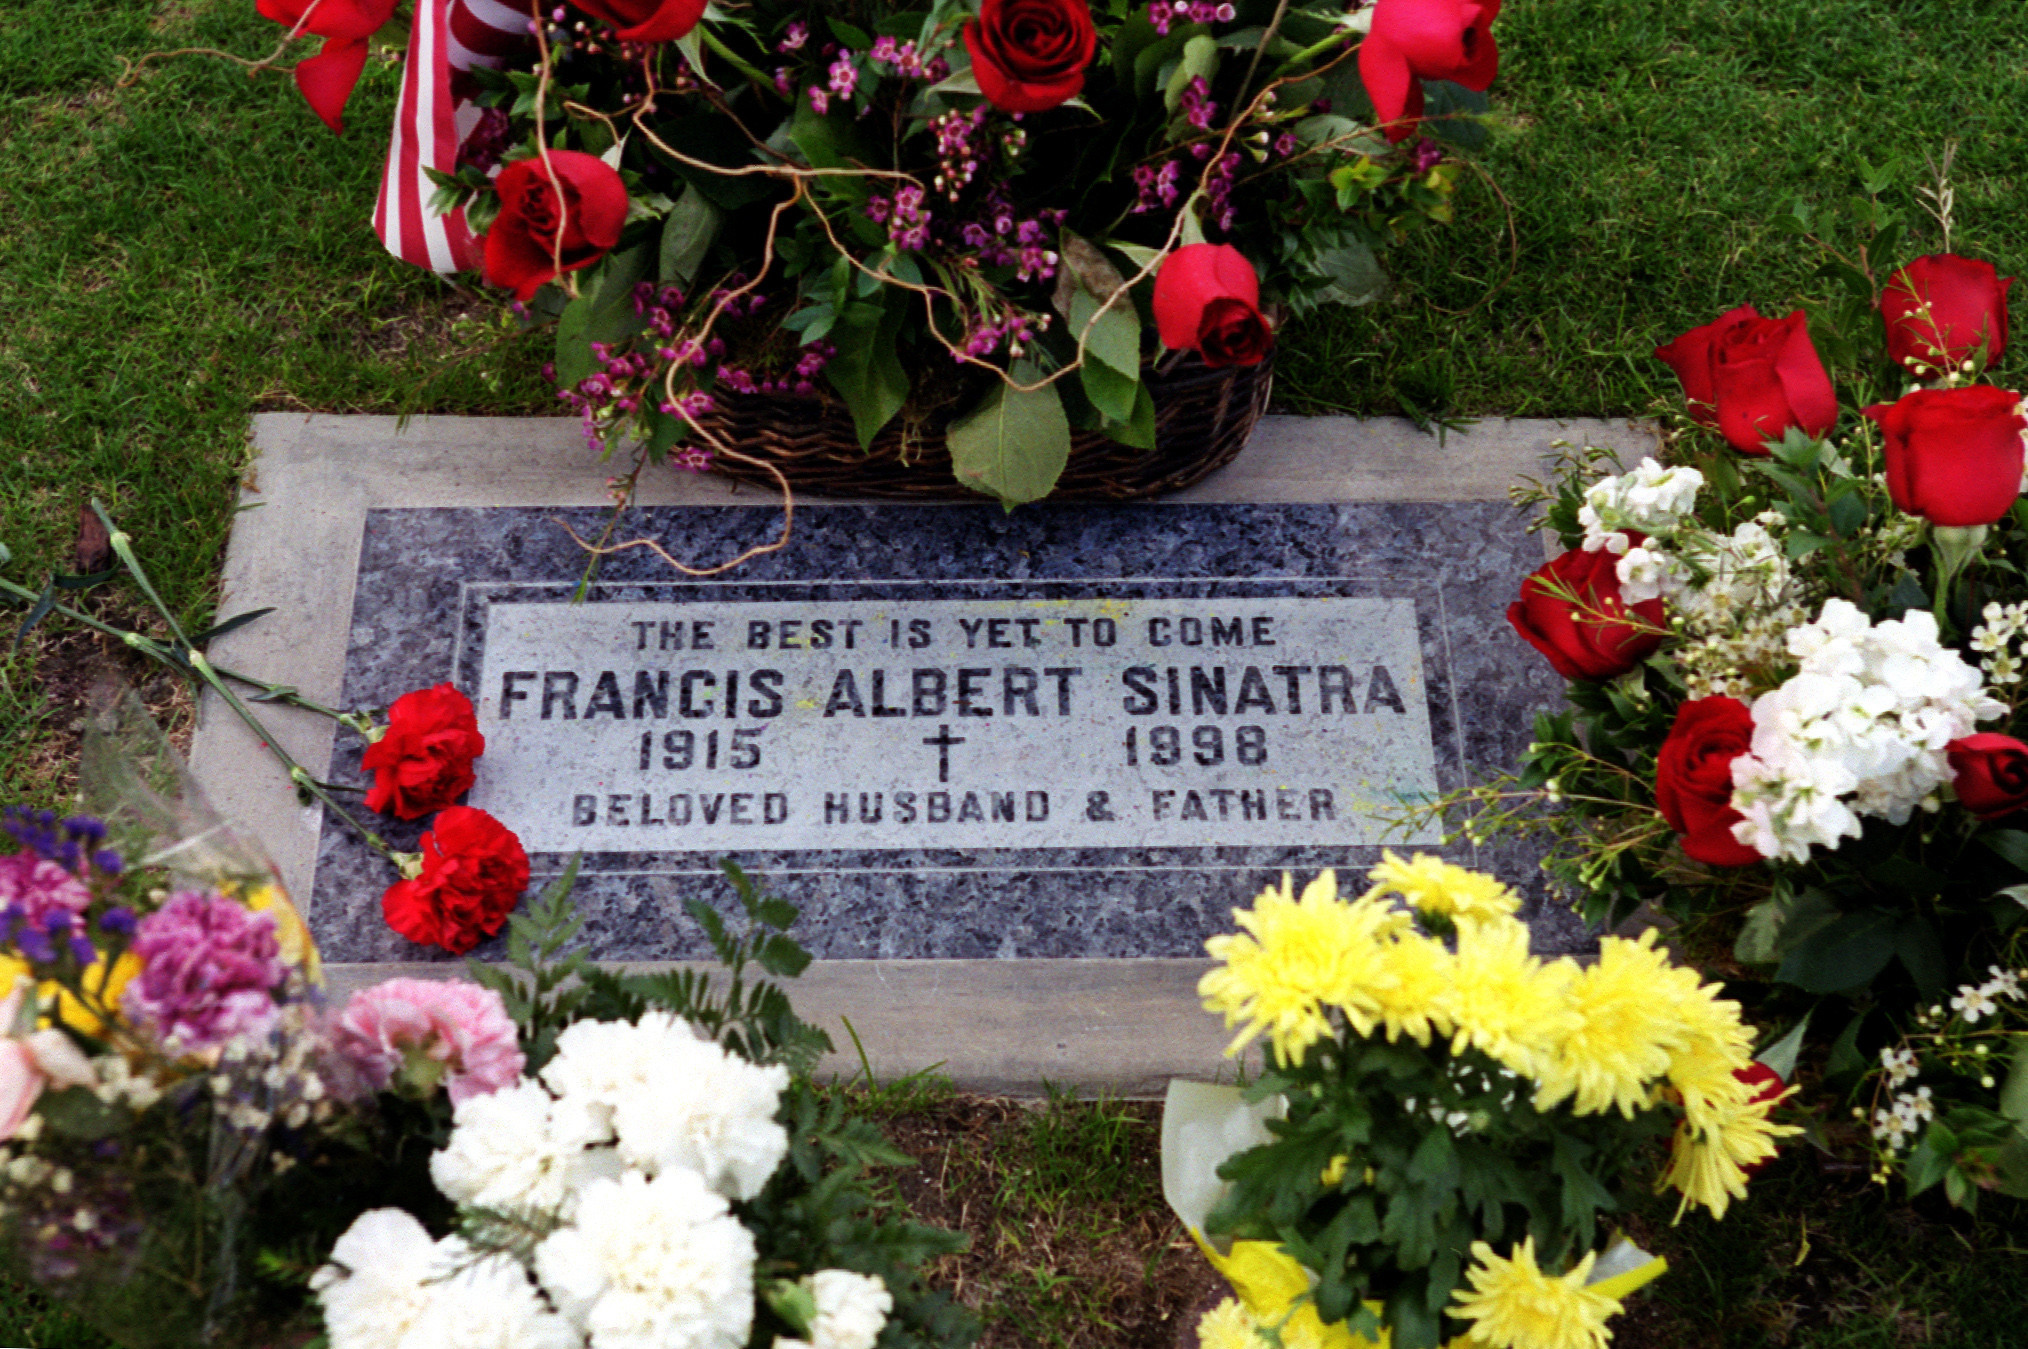 Still missing frank sinatra 5 ways to celebrate his 100th birthday 5 visit his grave mightylinksfo Images